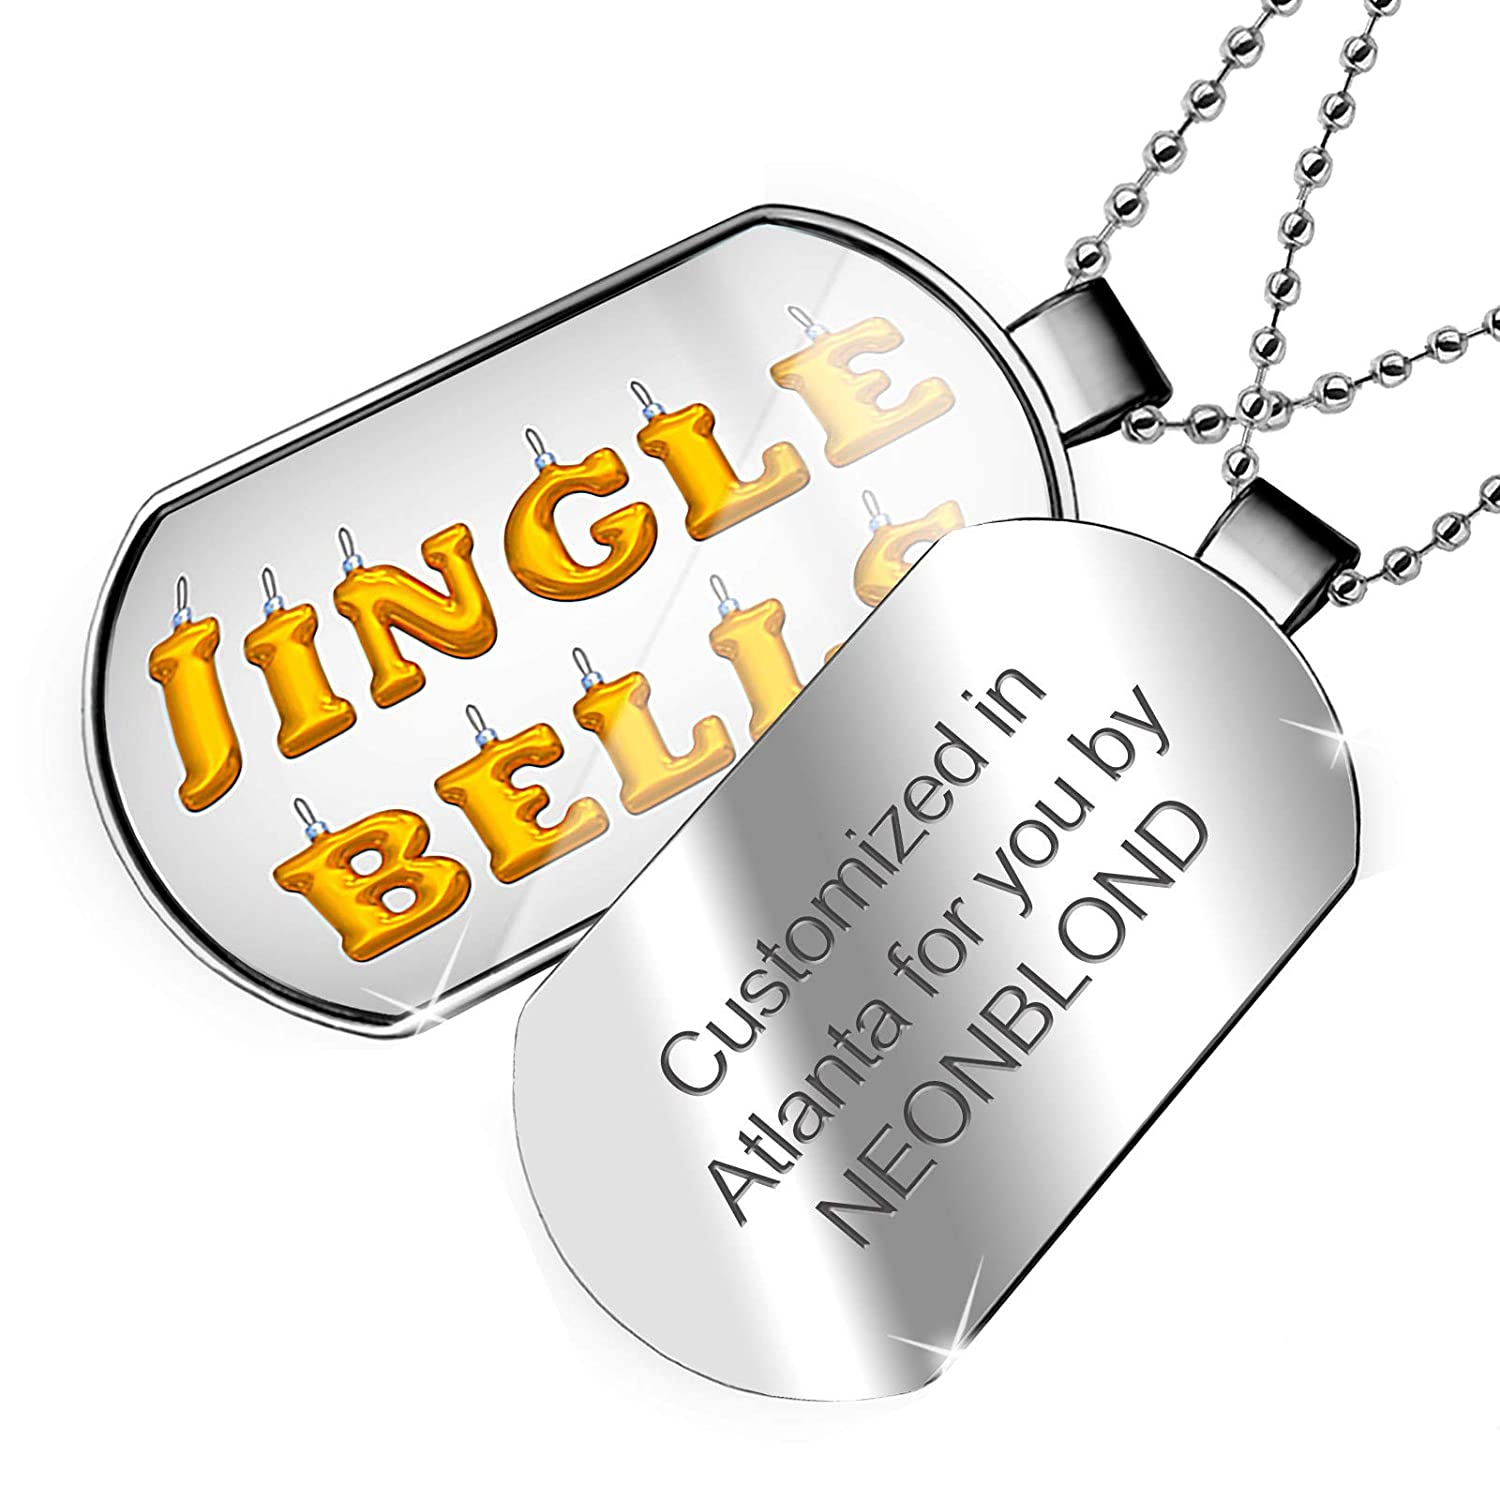 NEONBLOND Personalized Name Engraved Jingle Bells Christmas Ornament Dogtag Necklace